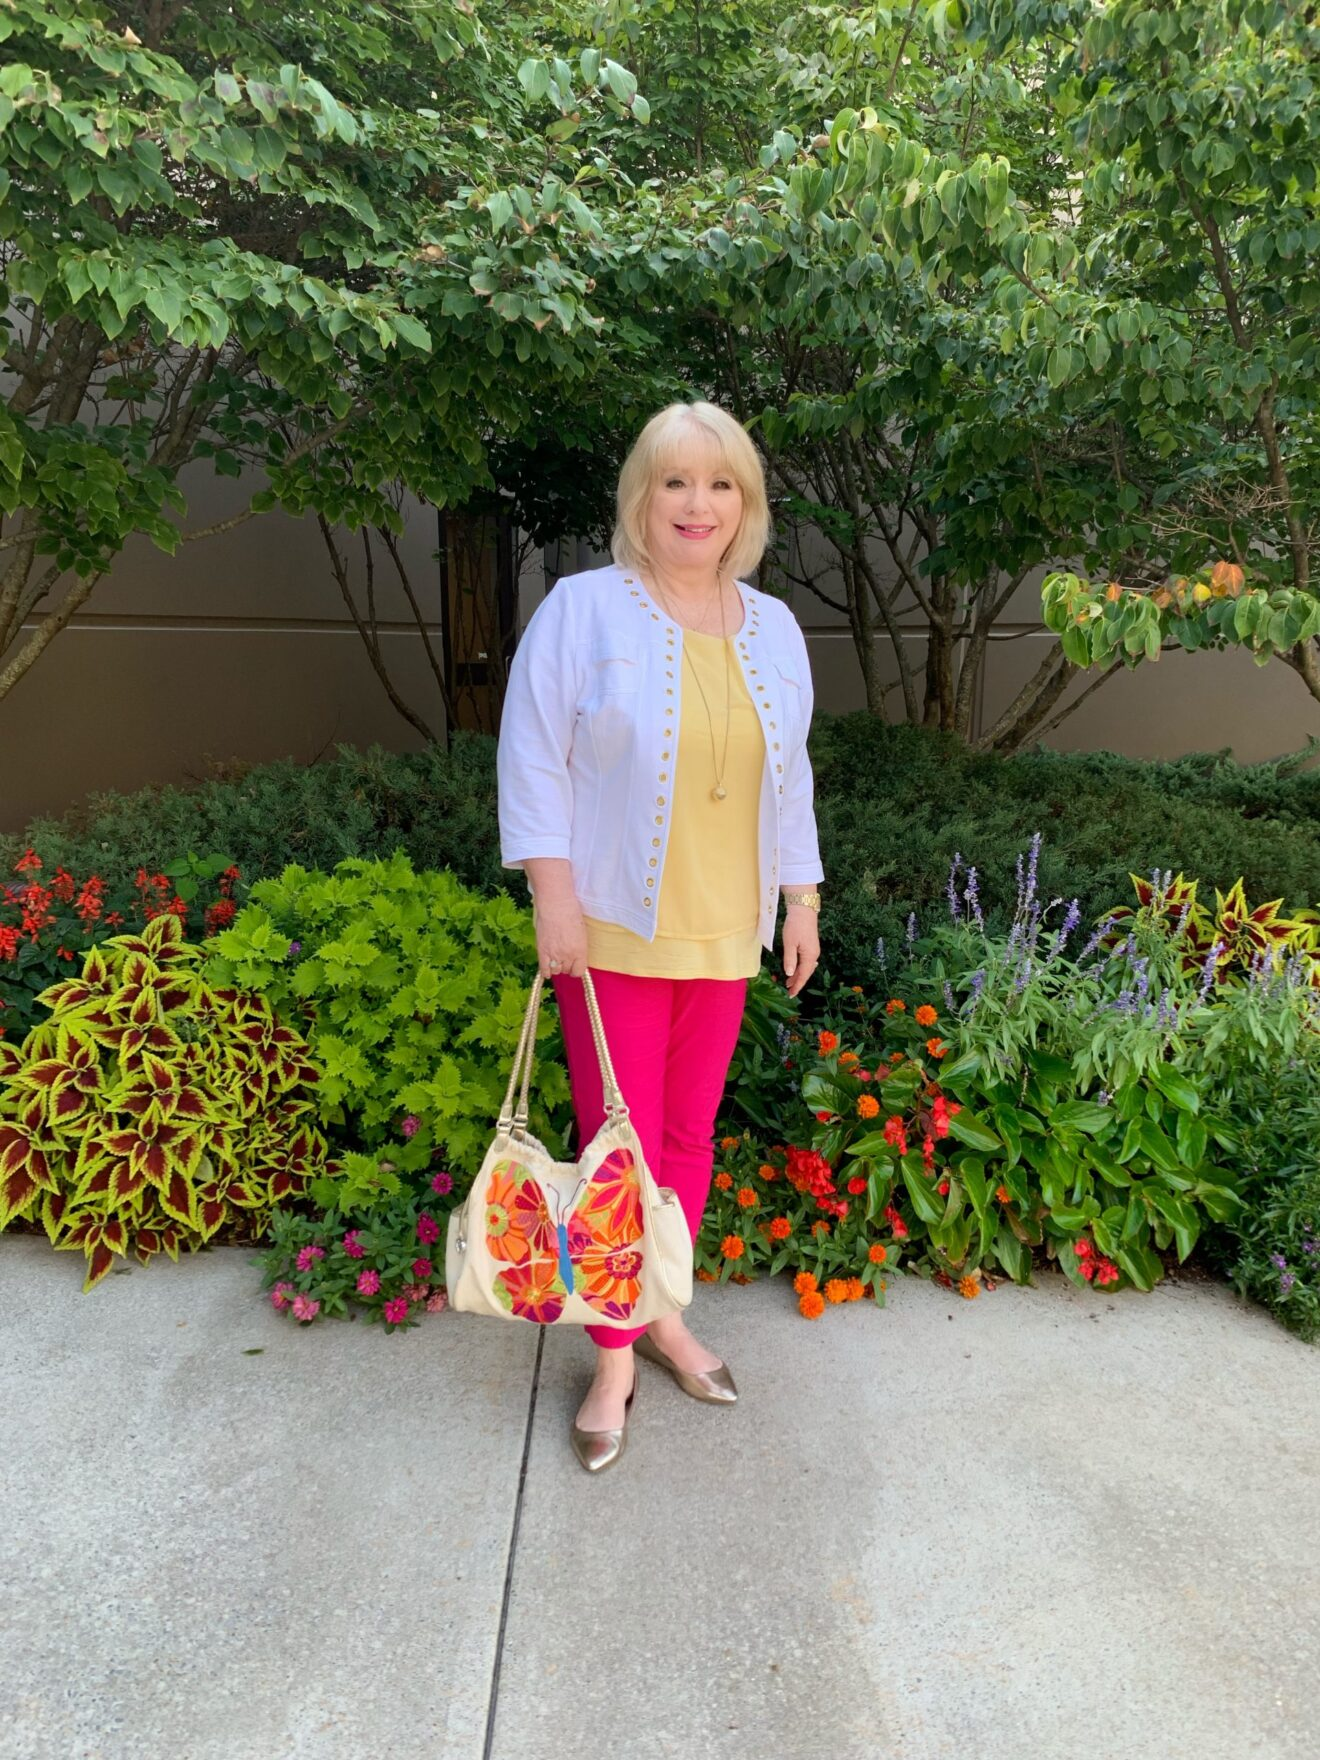 Style Story Interview Classy Colorful Confidence @StyleShennanigans Shannon Holmes Fashion Over 50 60 Confident Happy Pink and Yellow Butterfly Outfit Story Behind The Cloth scaled